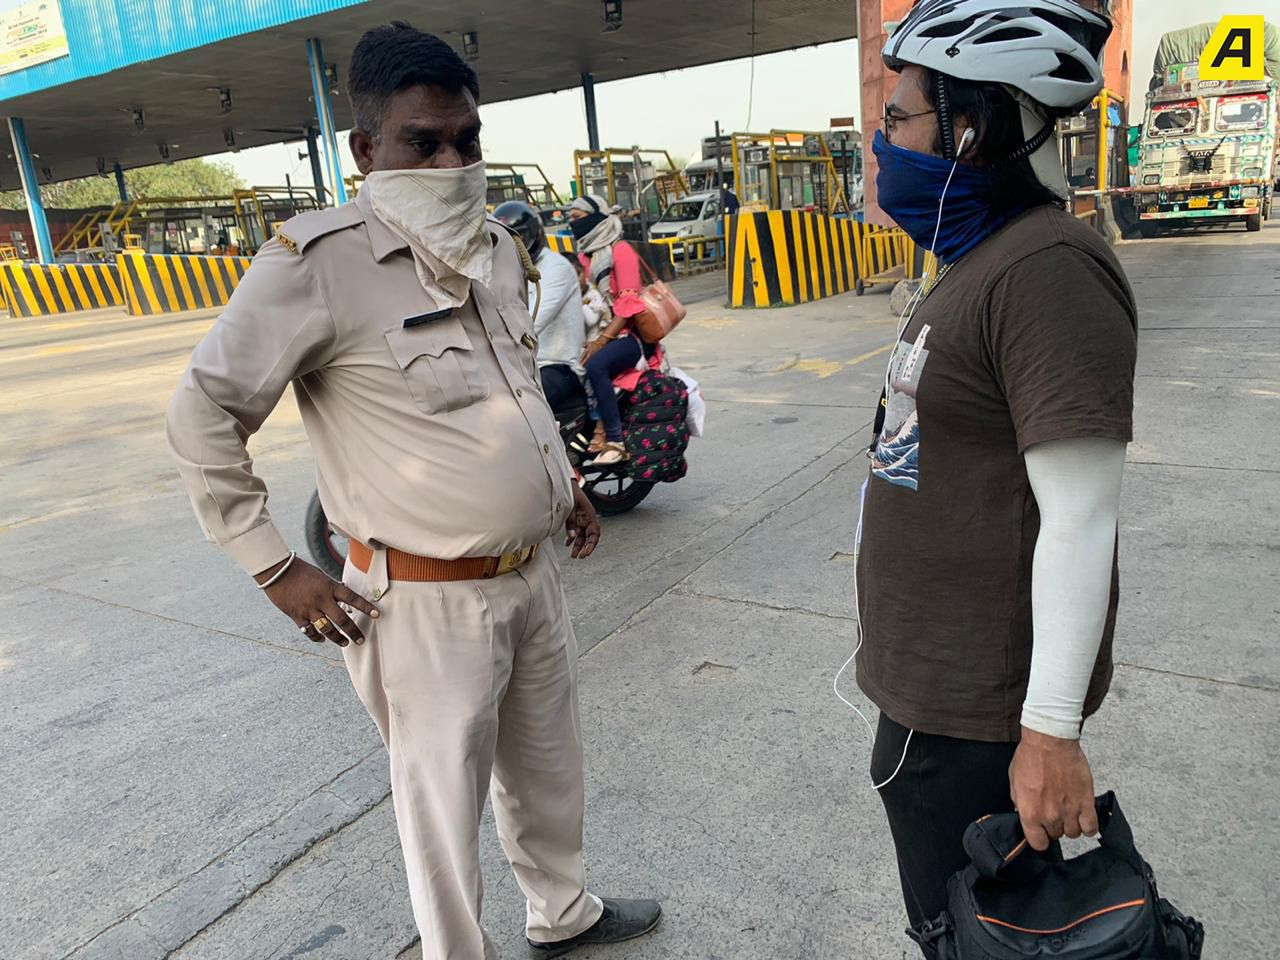 Dibyayudh Das talking to the police officer.